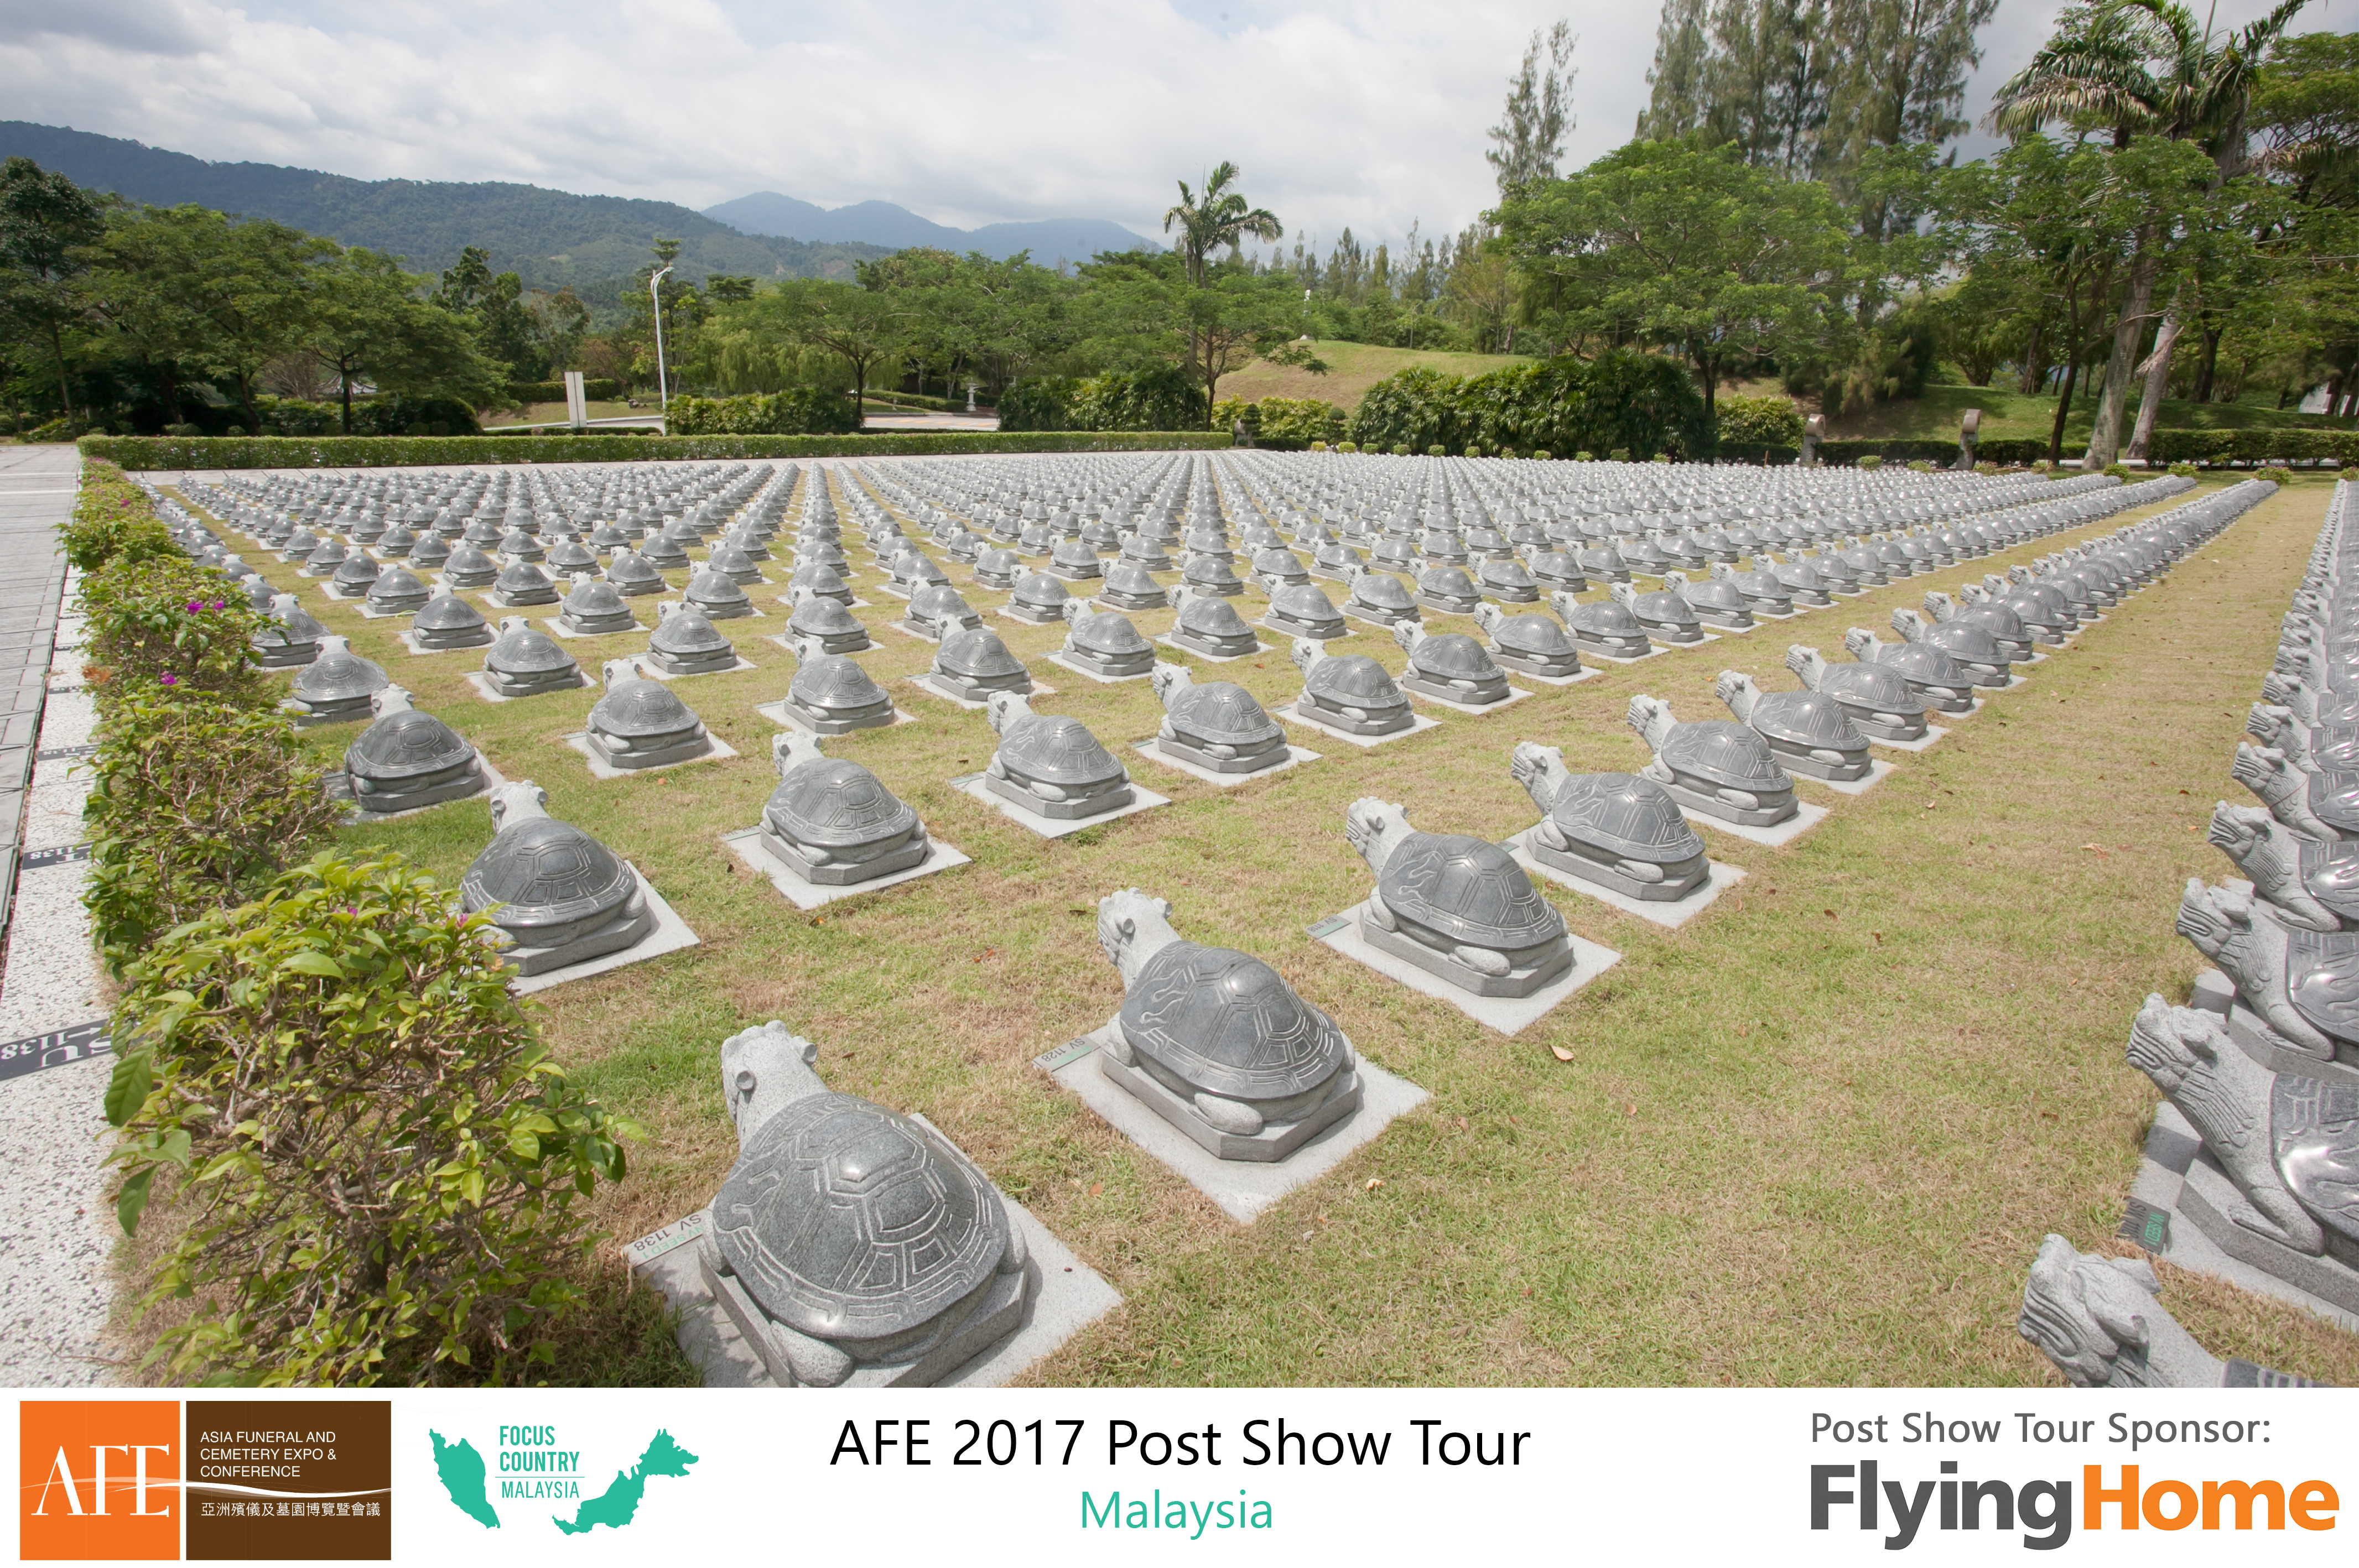 AFE Post Show Tour 2017 Day 2 - 11